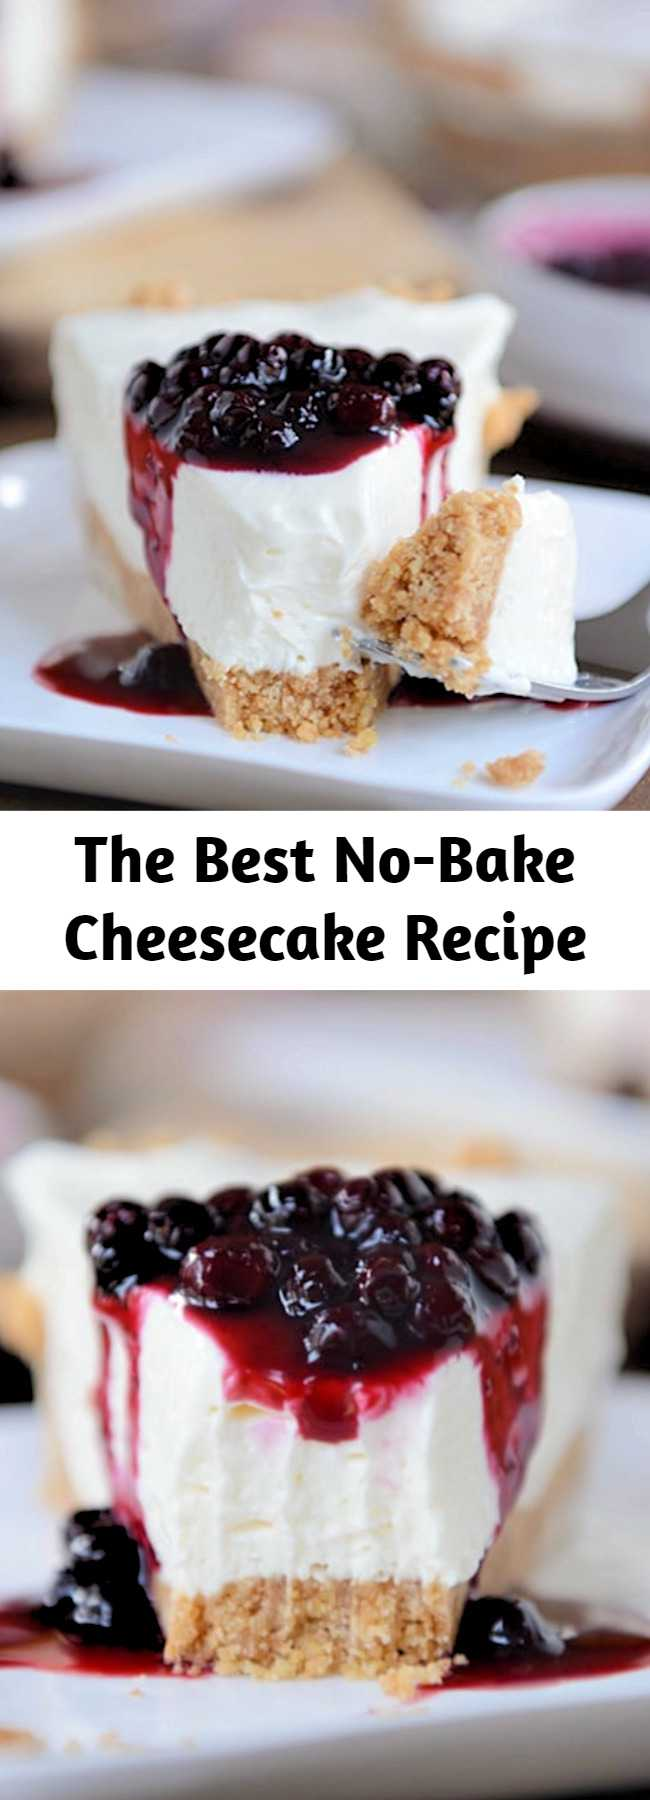 Looking for the best no-bake cheesecake? Rich and creamy and so simple to prepare, this classic no-bake vanilla cheesecake is the stuff dreams are made of.